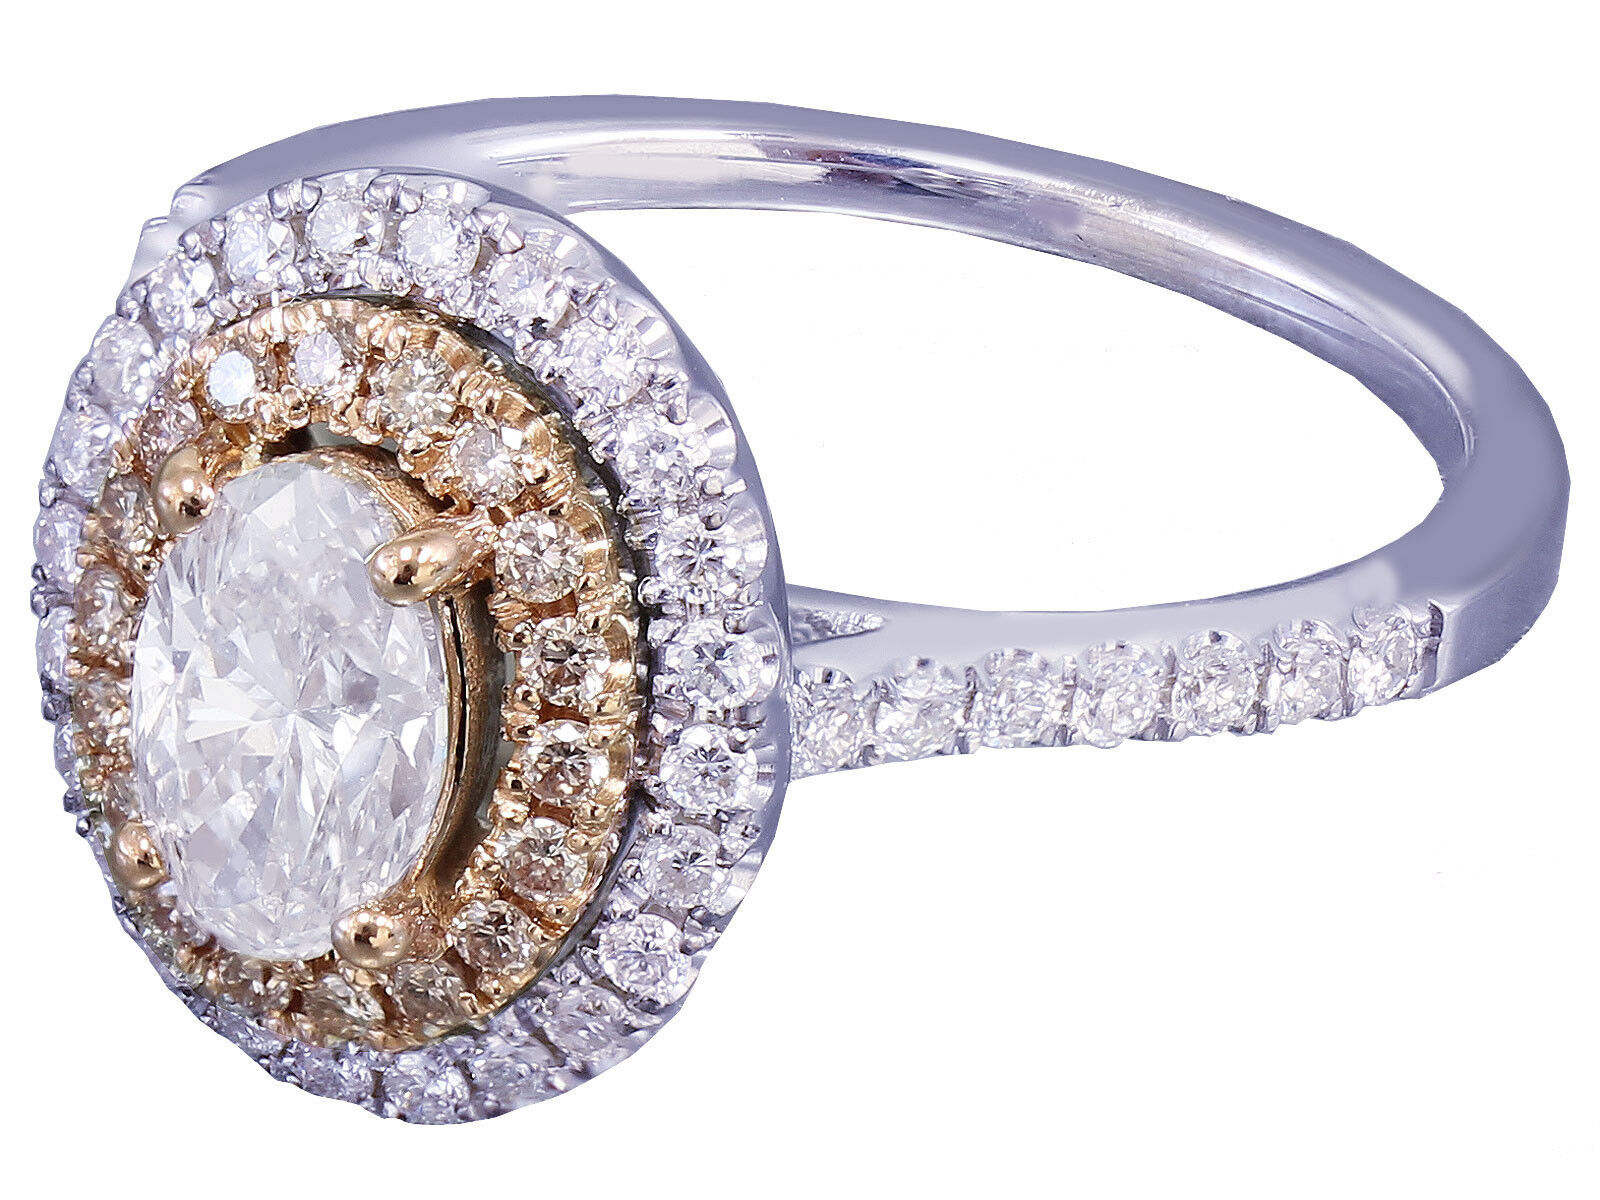 1.10ct 14k White and pink gold Oval Cut Diamond Engagement Ring Bridal Set Halo